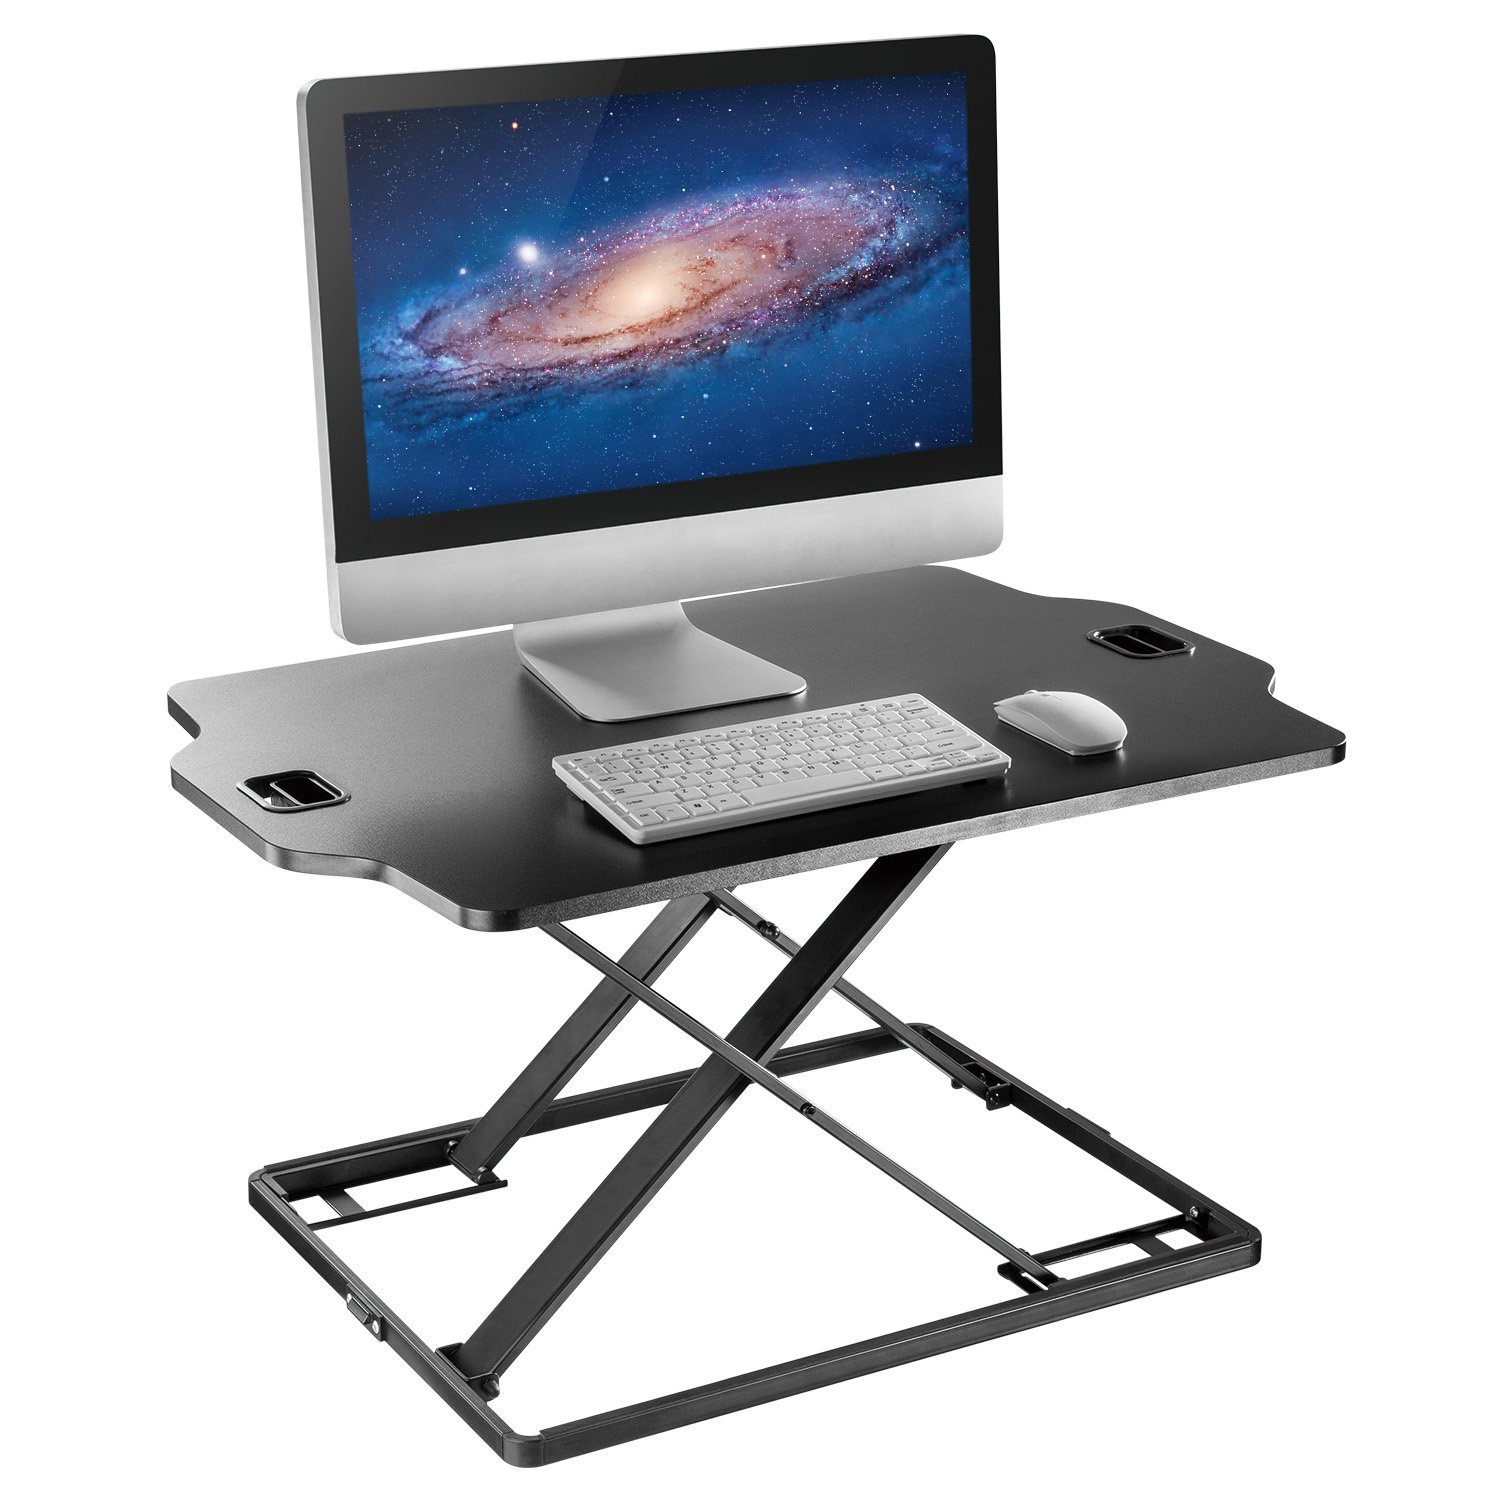 Standing Desk Converter - Height Adjustable Sit to Stand Up Desk, Economic Tabletop Workstation Monitor Riser, Lift Height from 1.6'' to 16''